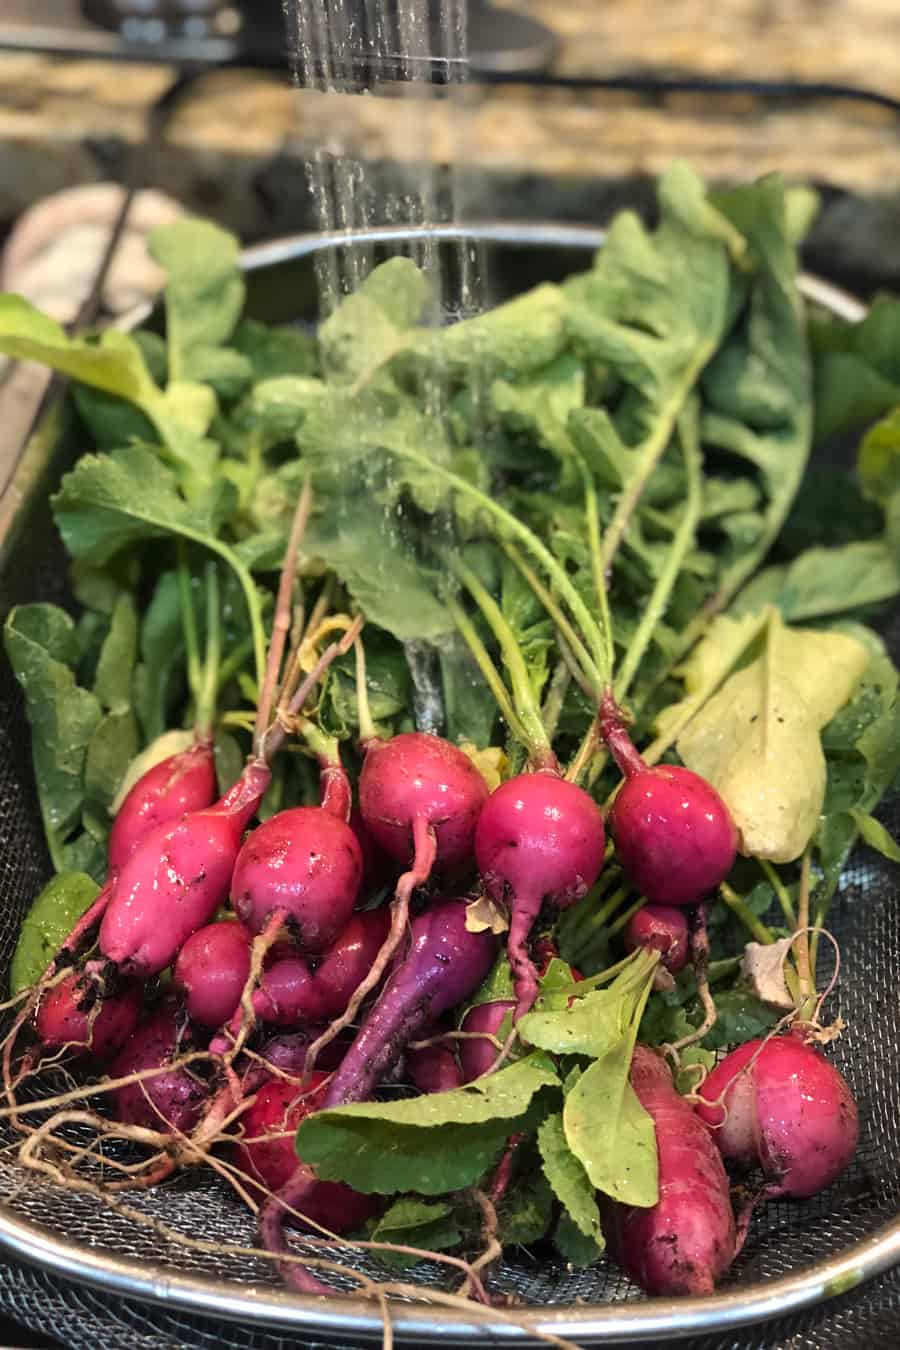 radishes washed in the sink